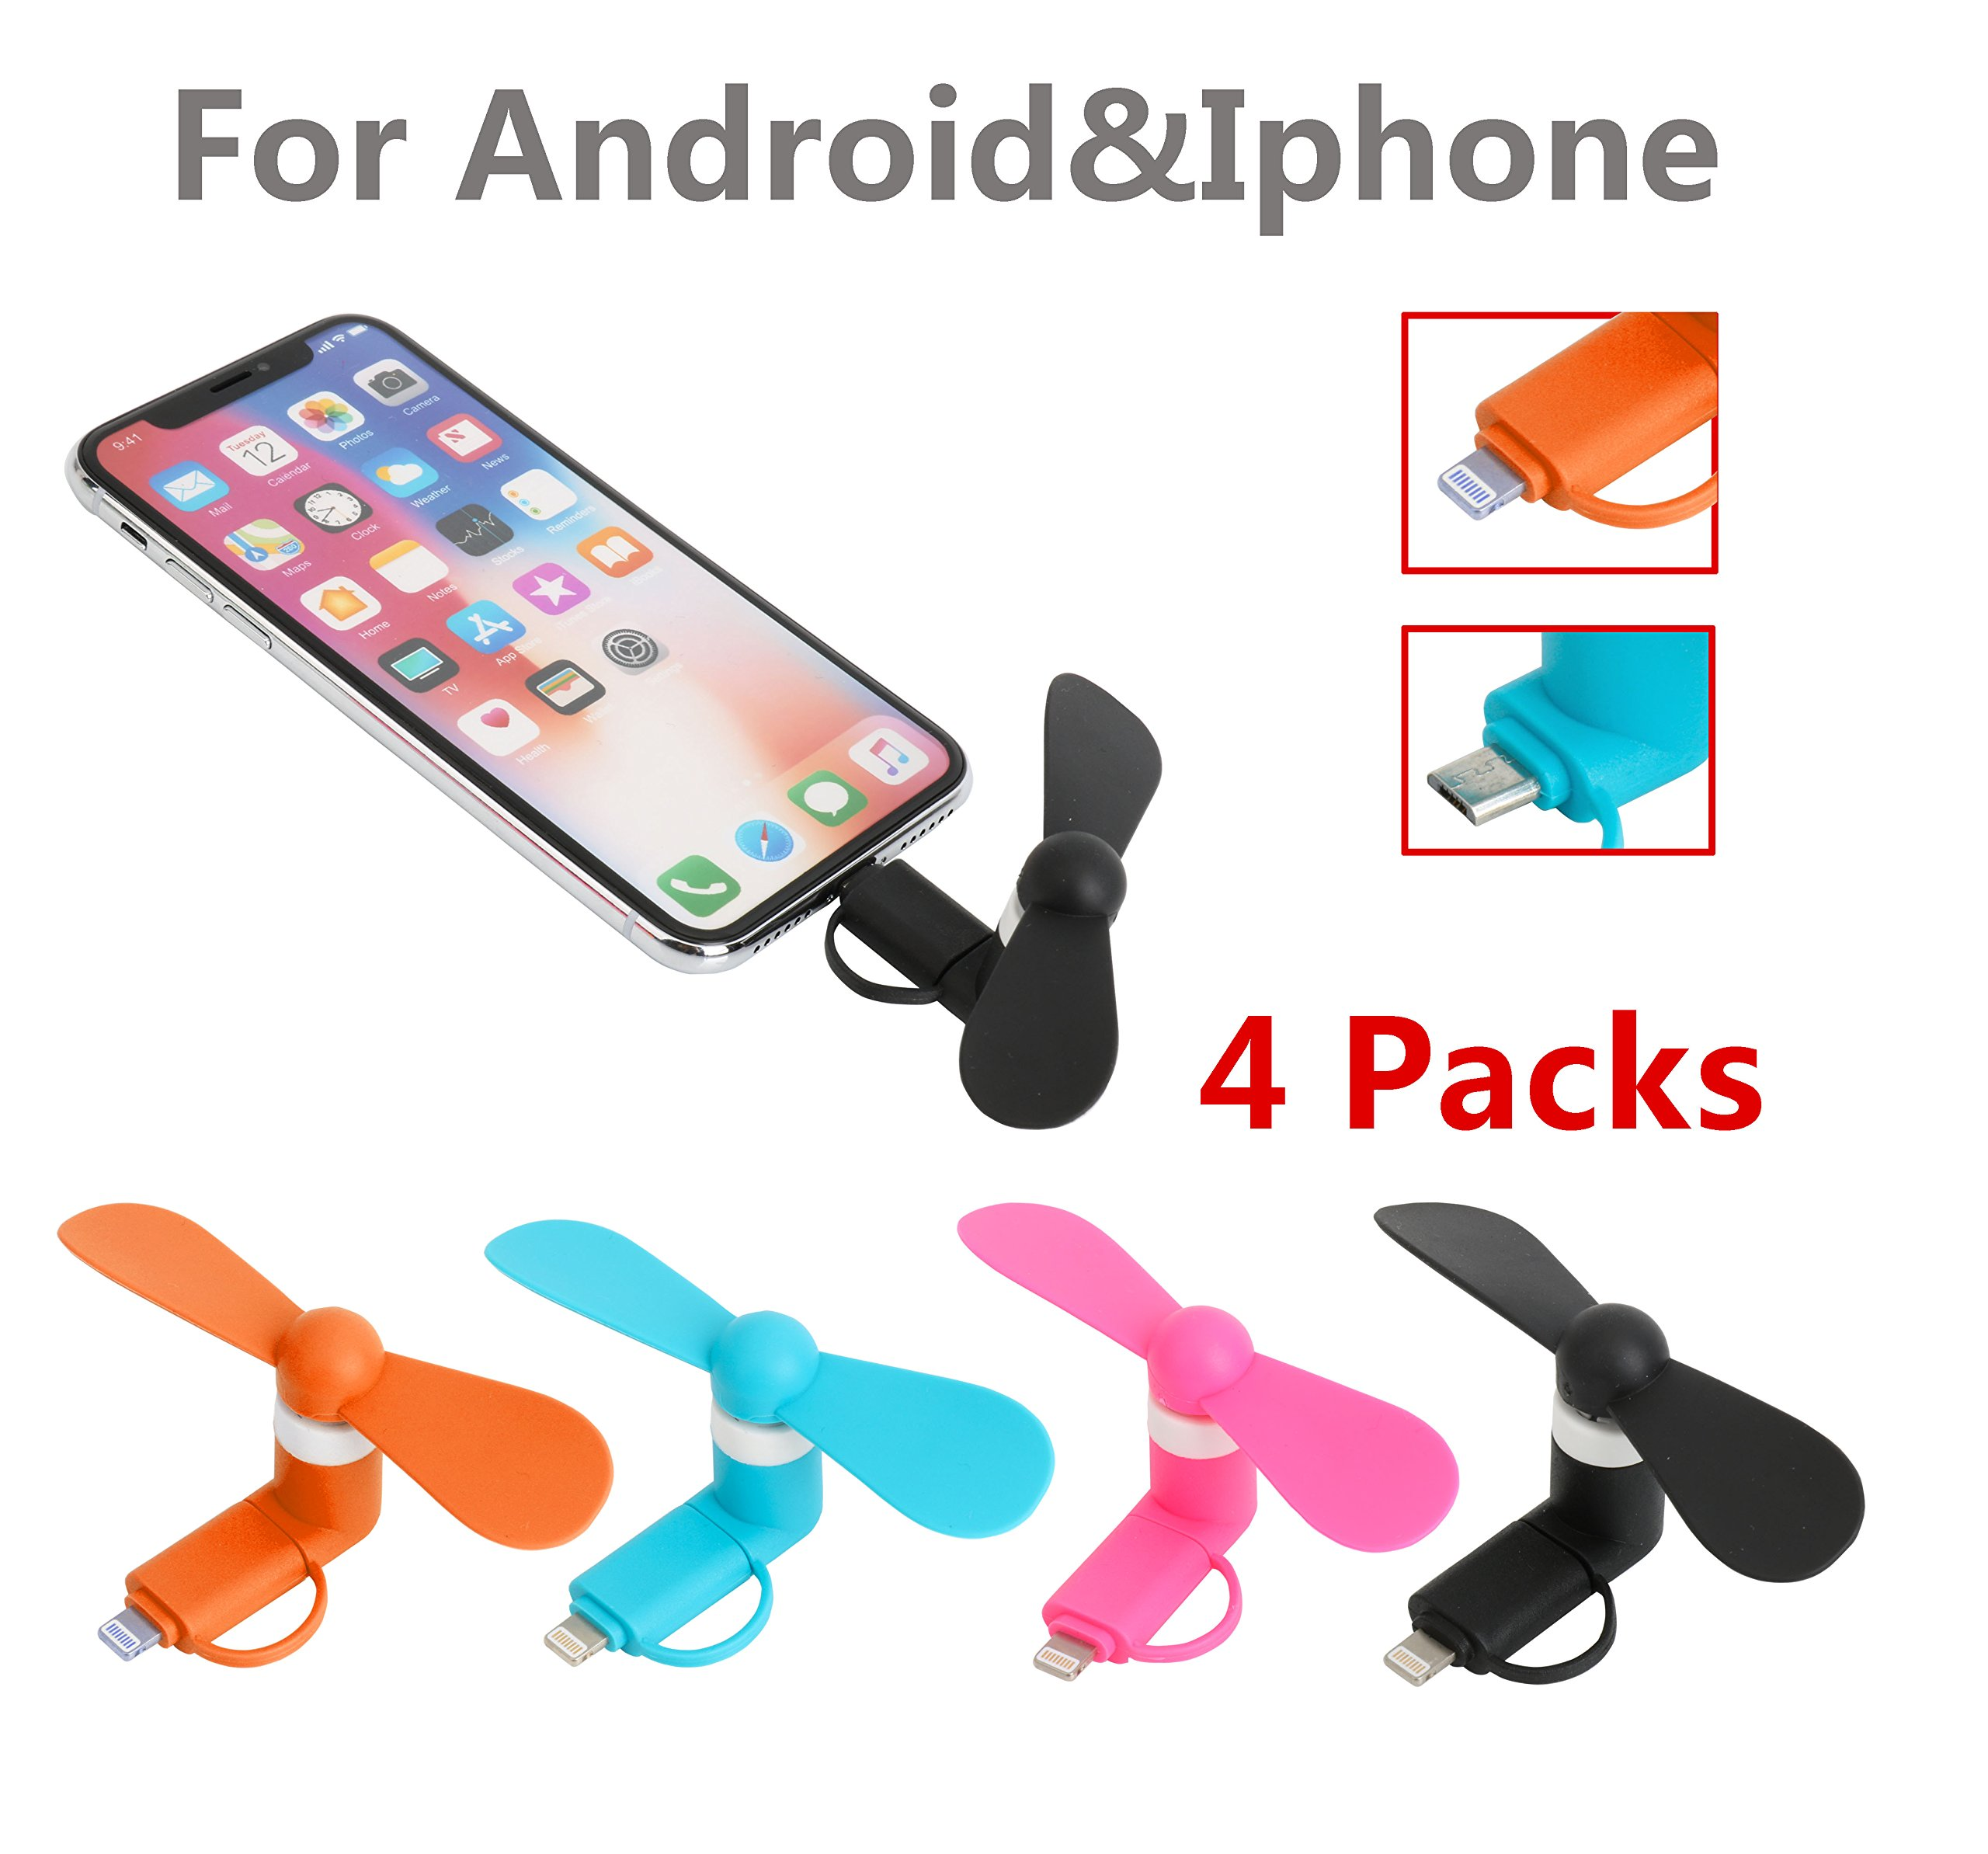 4 Packs 2-in-1 Portable Mini Fan Mobile/Smartphone Fan - Portable and Compatible for iPhone/iPad, Android Phone, Colorful Set of 4 - Pink/Blue/Orange/Black - Summer Cell Phone Accessories (4-pack)